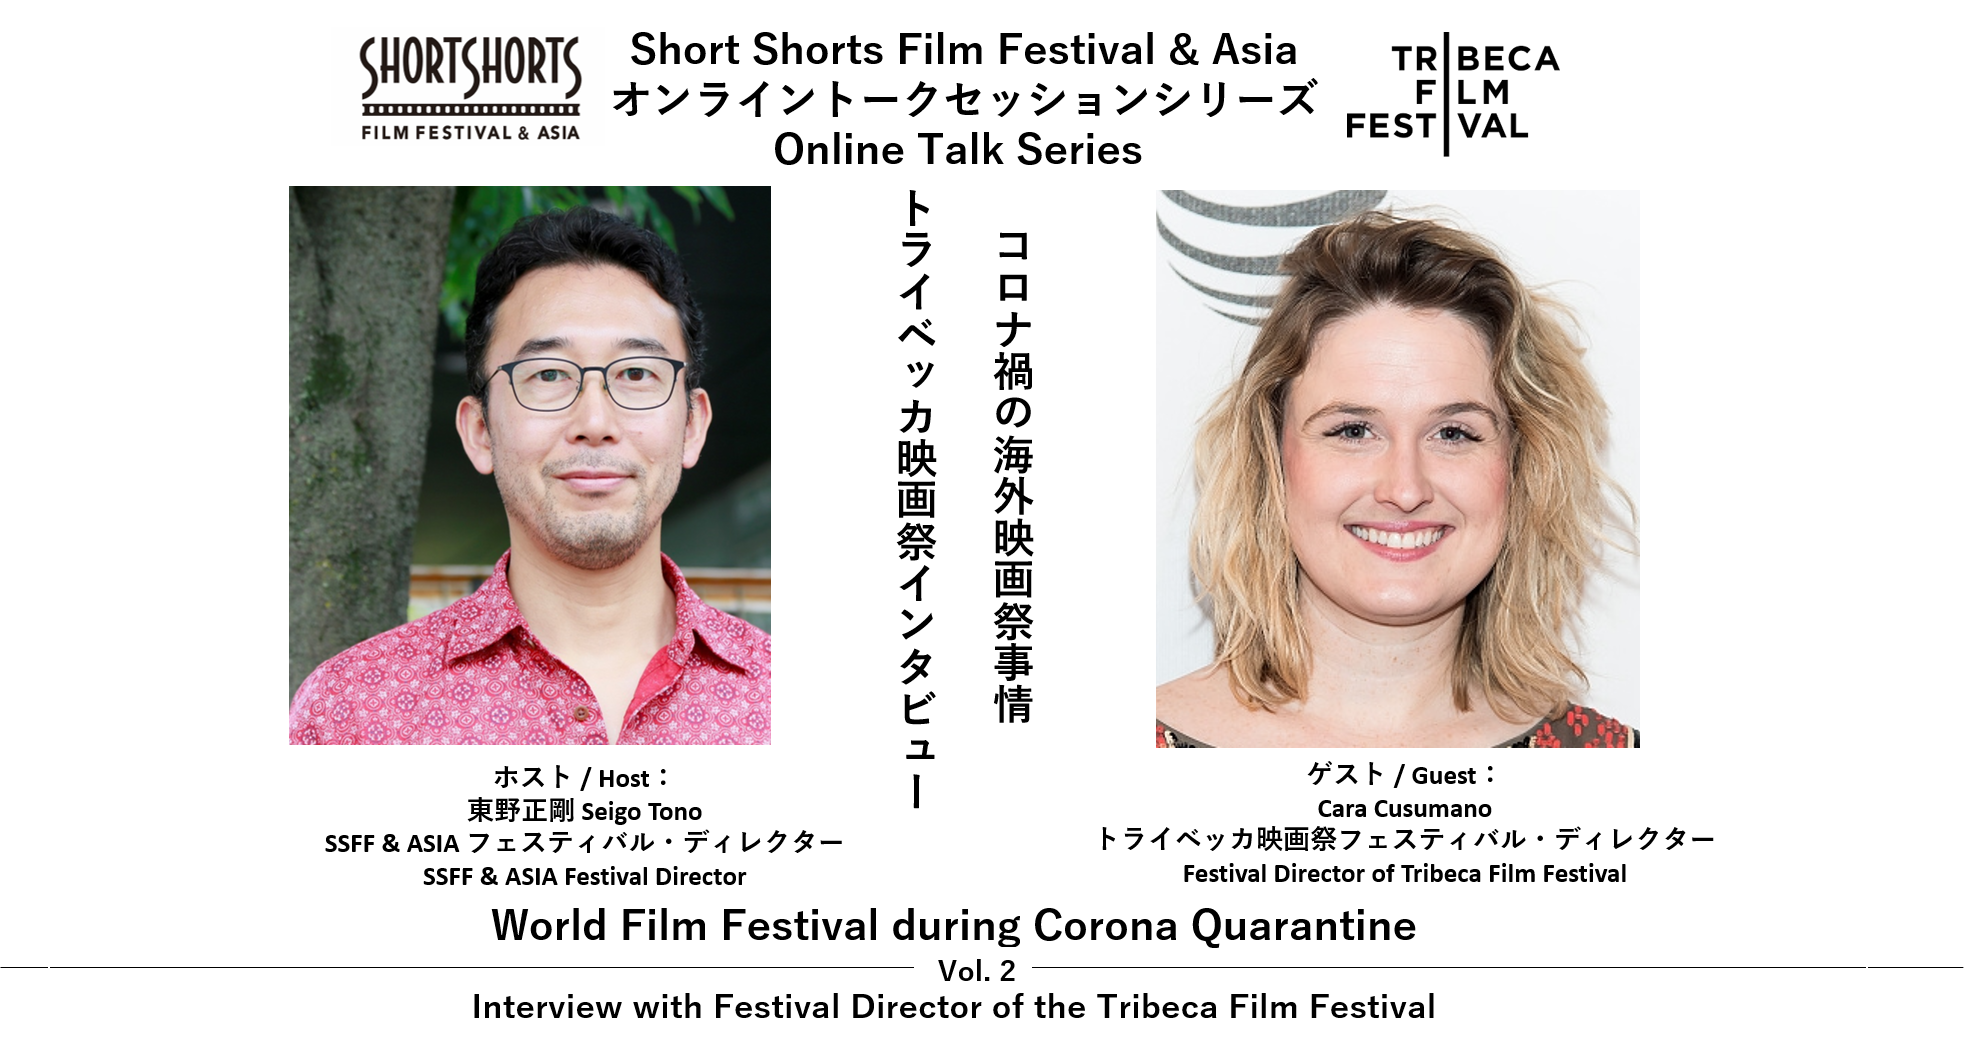 SSFF & ASIA 2020 Dates are set! 09/16 WED – 09/27